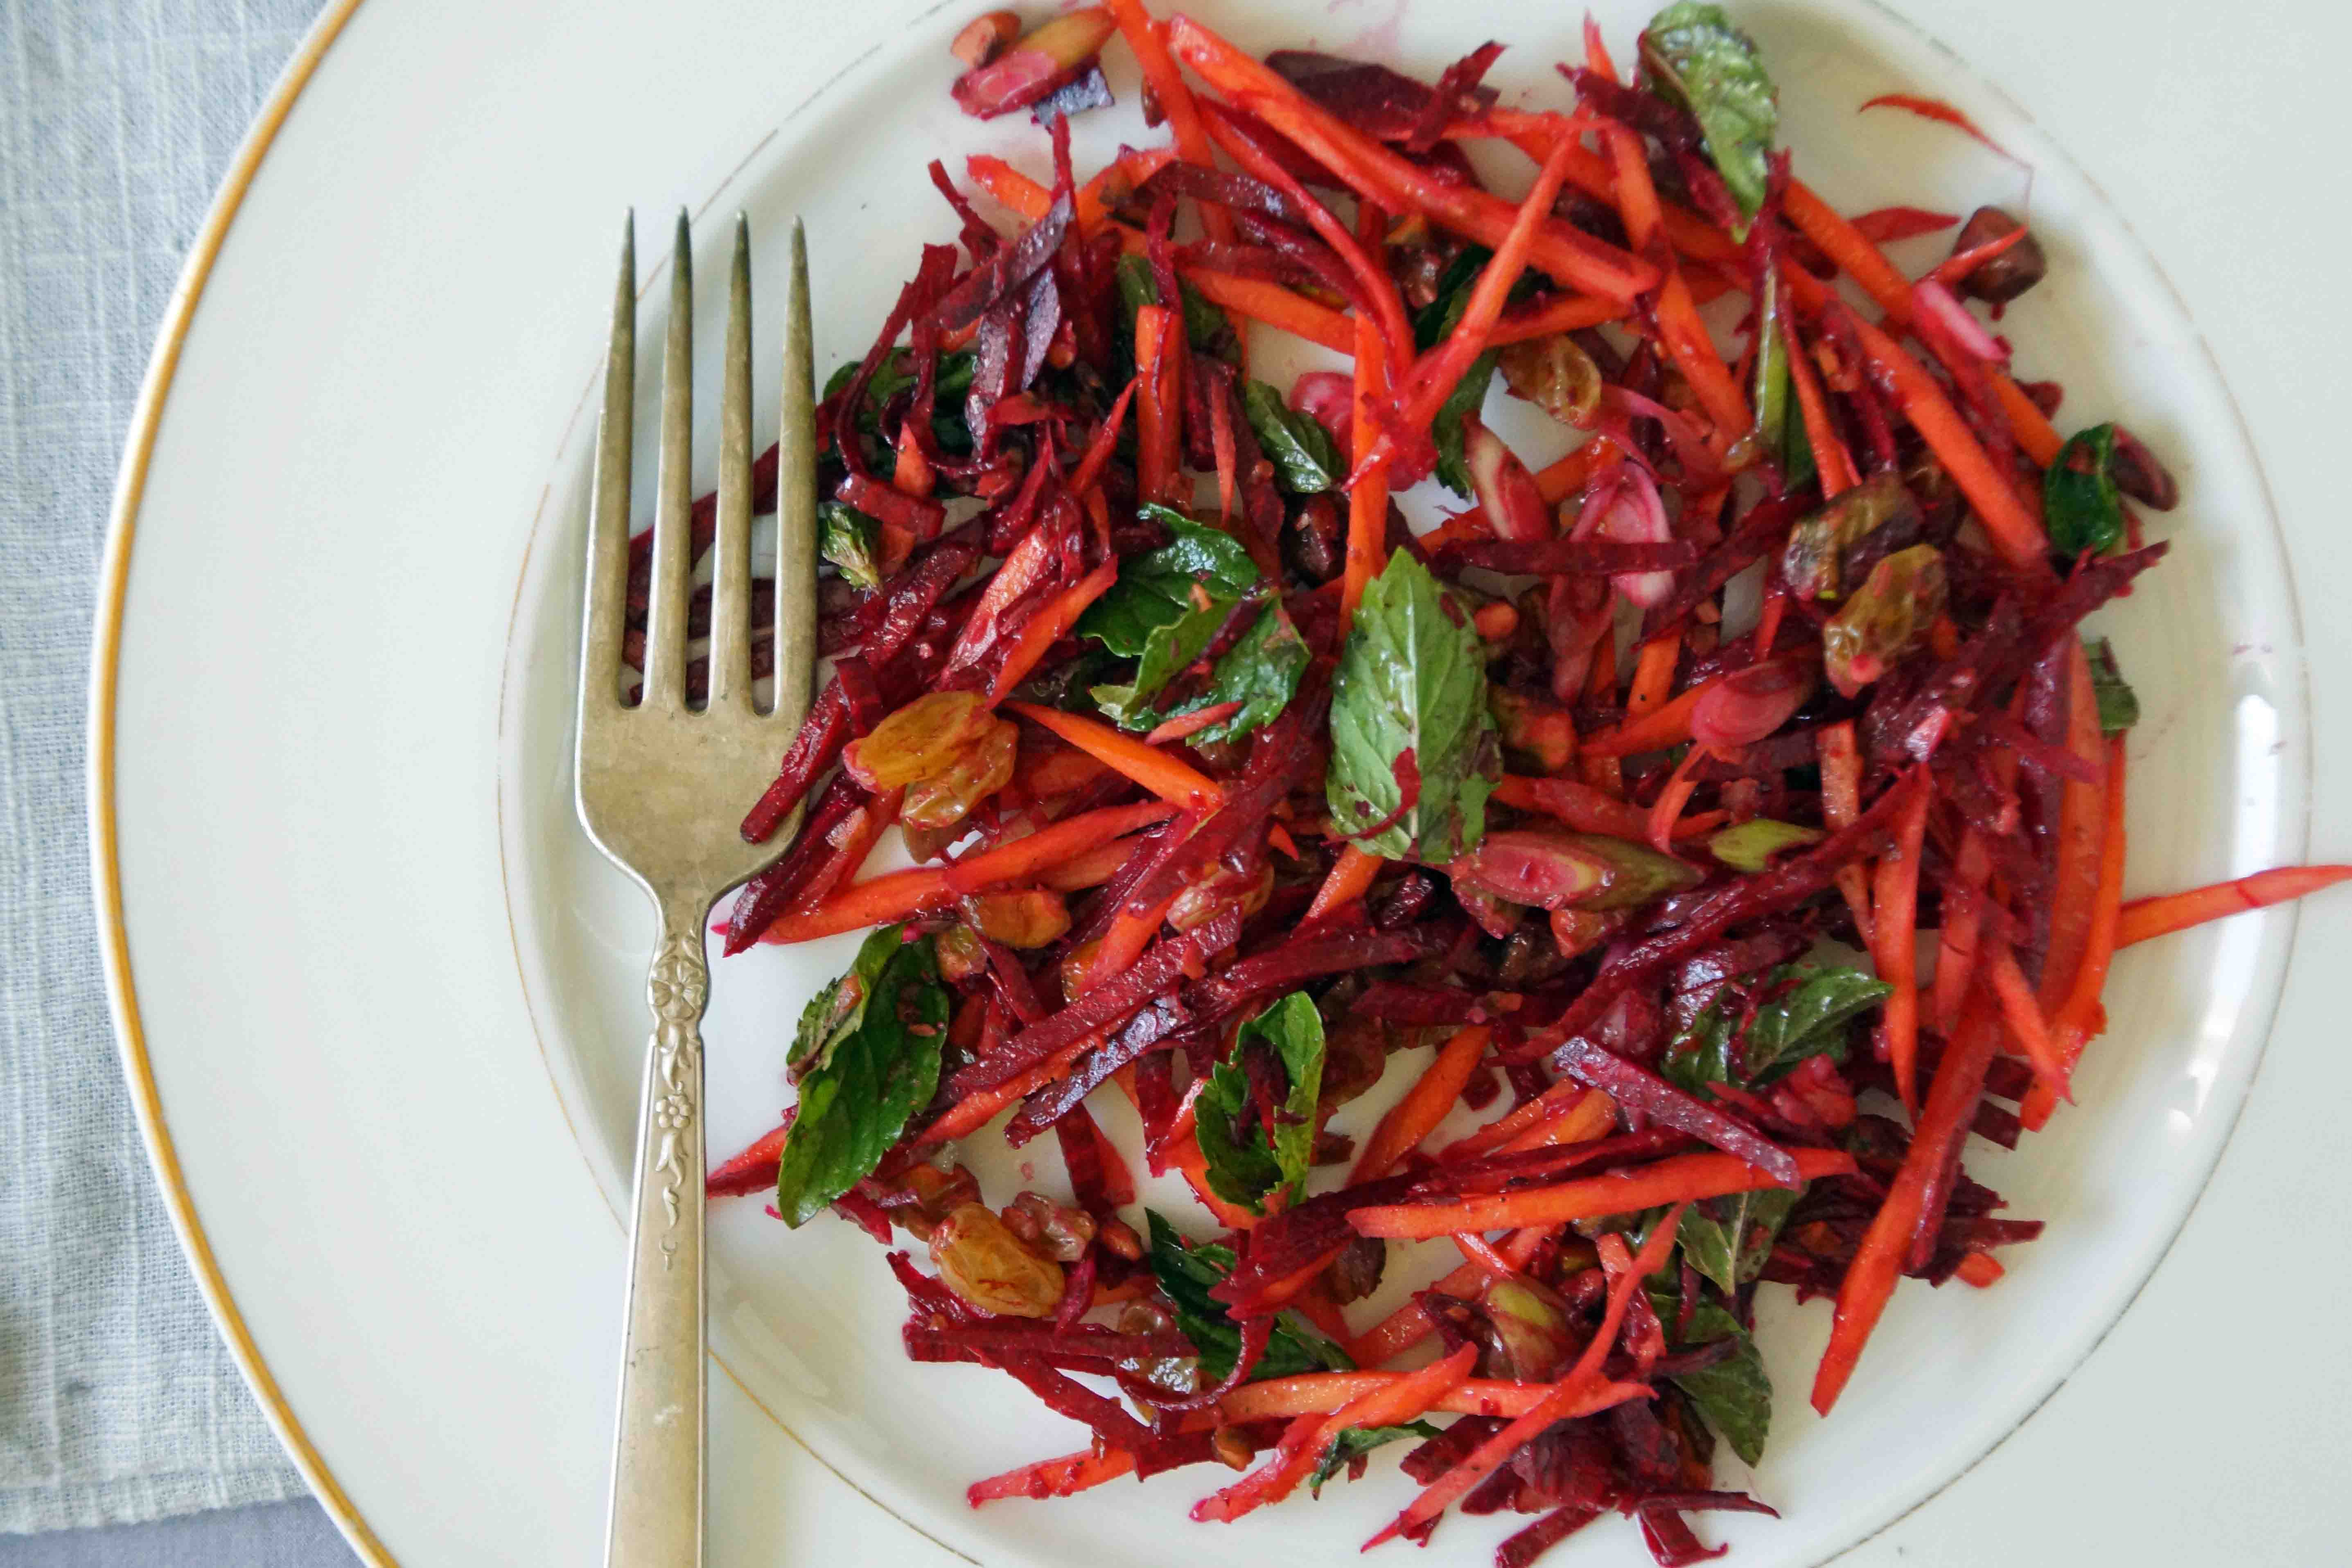 Beet & Carrot Salad with Raisins, Pistachios & Mint